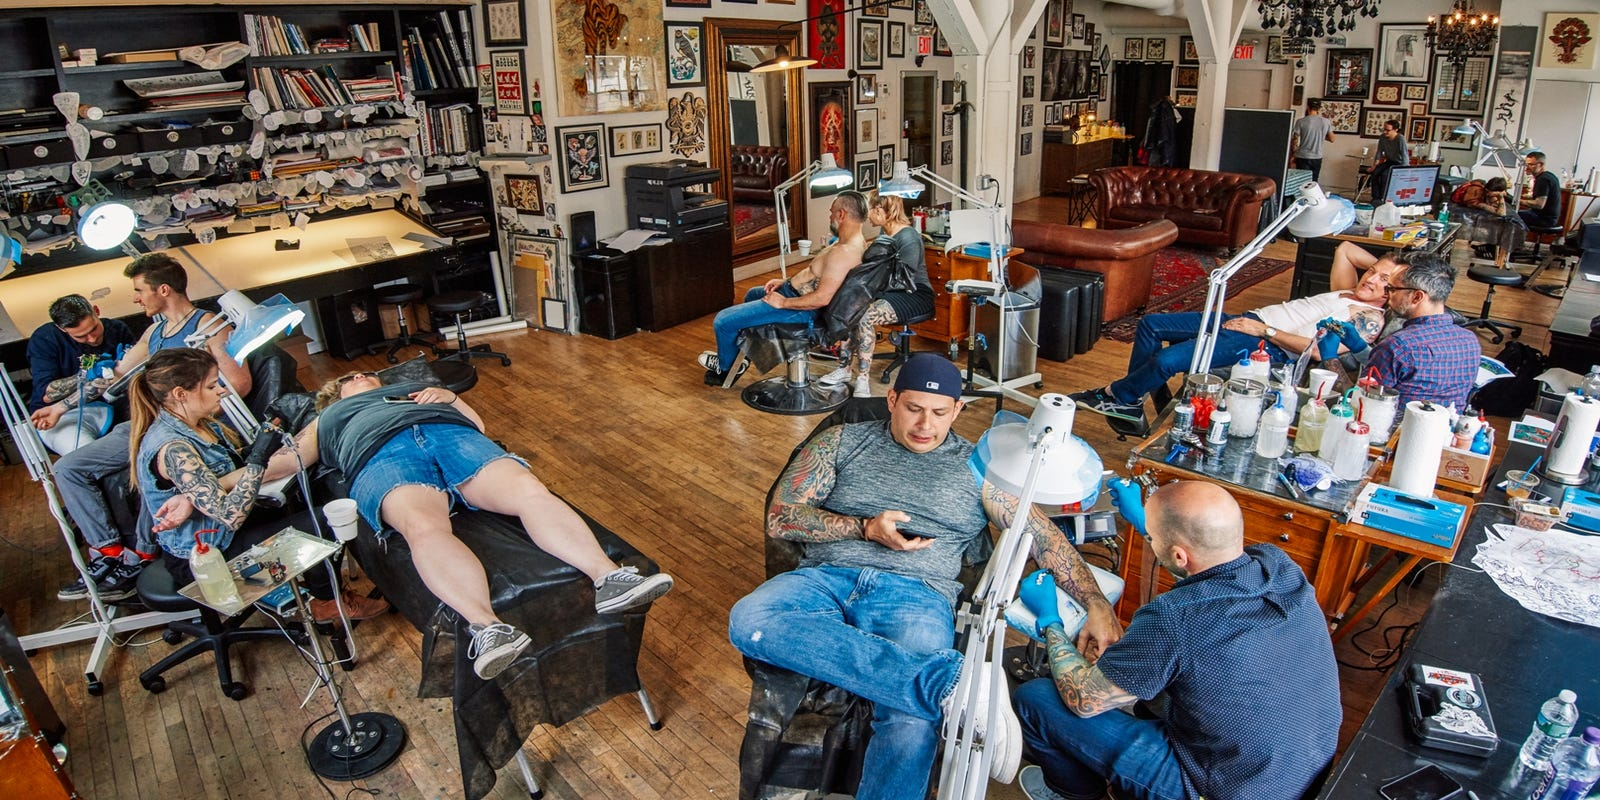 America S Best Tattoo Parlors Top Shops And Artists Across The Usa We provide an experience that is second to none. america s best tattoo parlors top